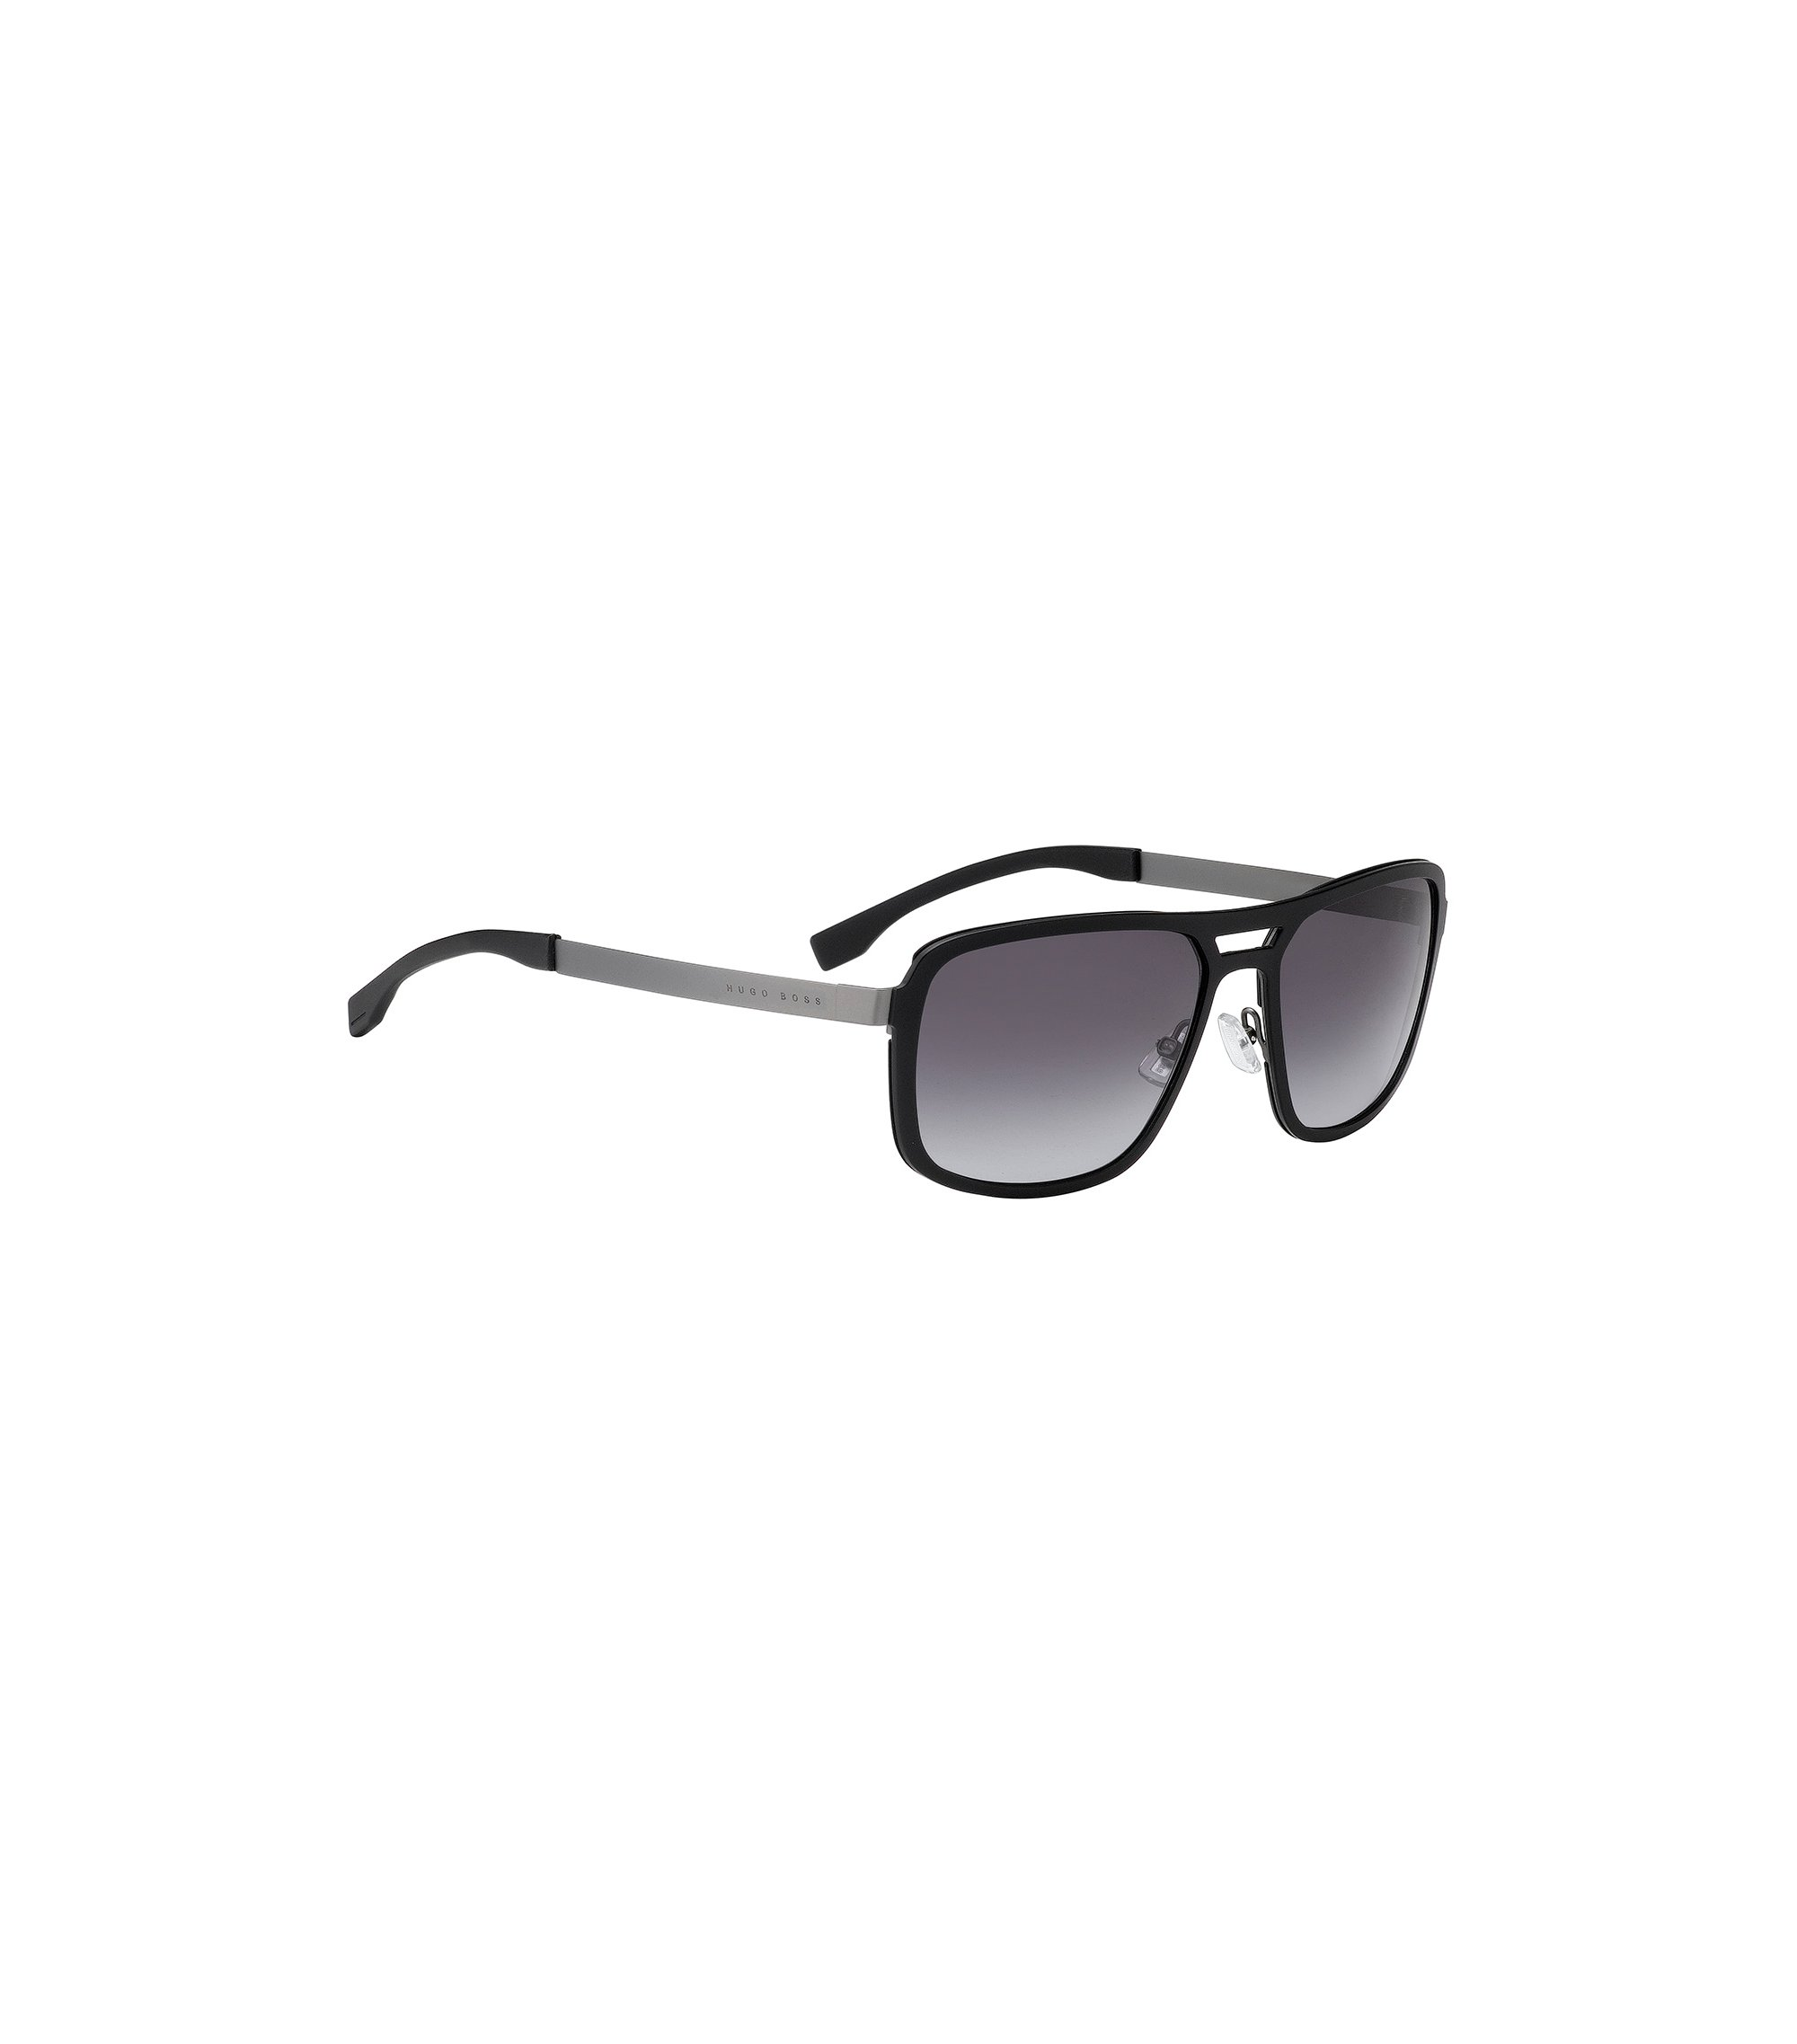 Sonnenbrille: 'BOSS 0724/S', Assorted-Pre-Pack